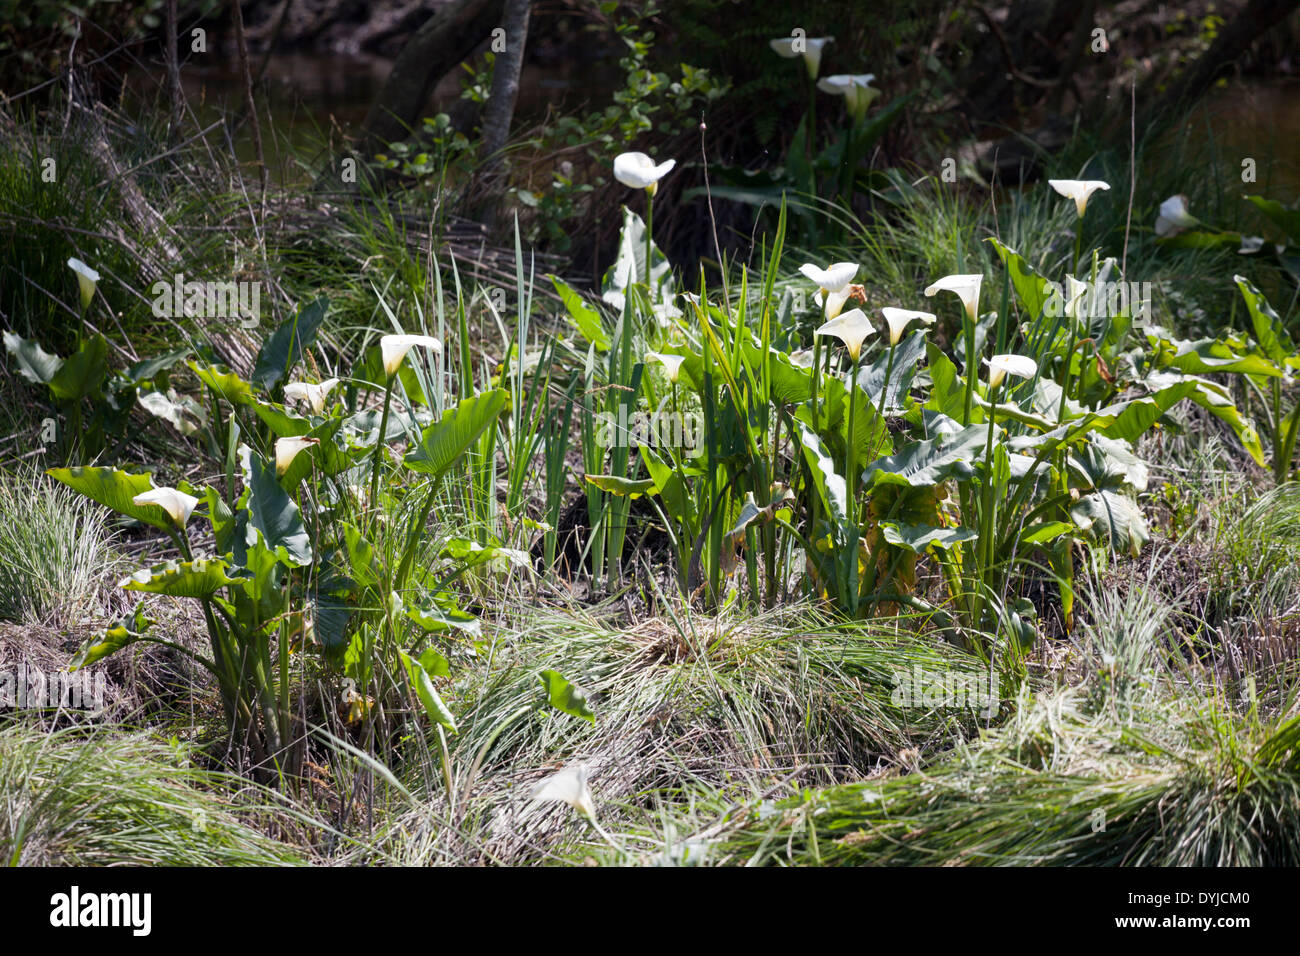 Acclimatized by riparians in the olden days, Arums thrive in April along the banks of 'Courant d'Huchet' (Landes - France). - Stock Image